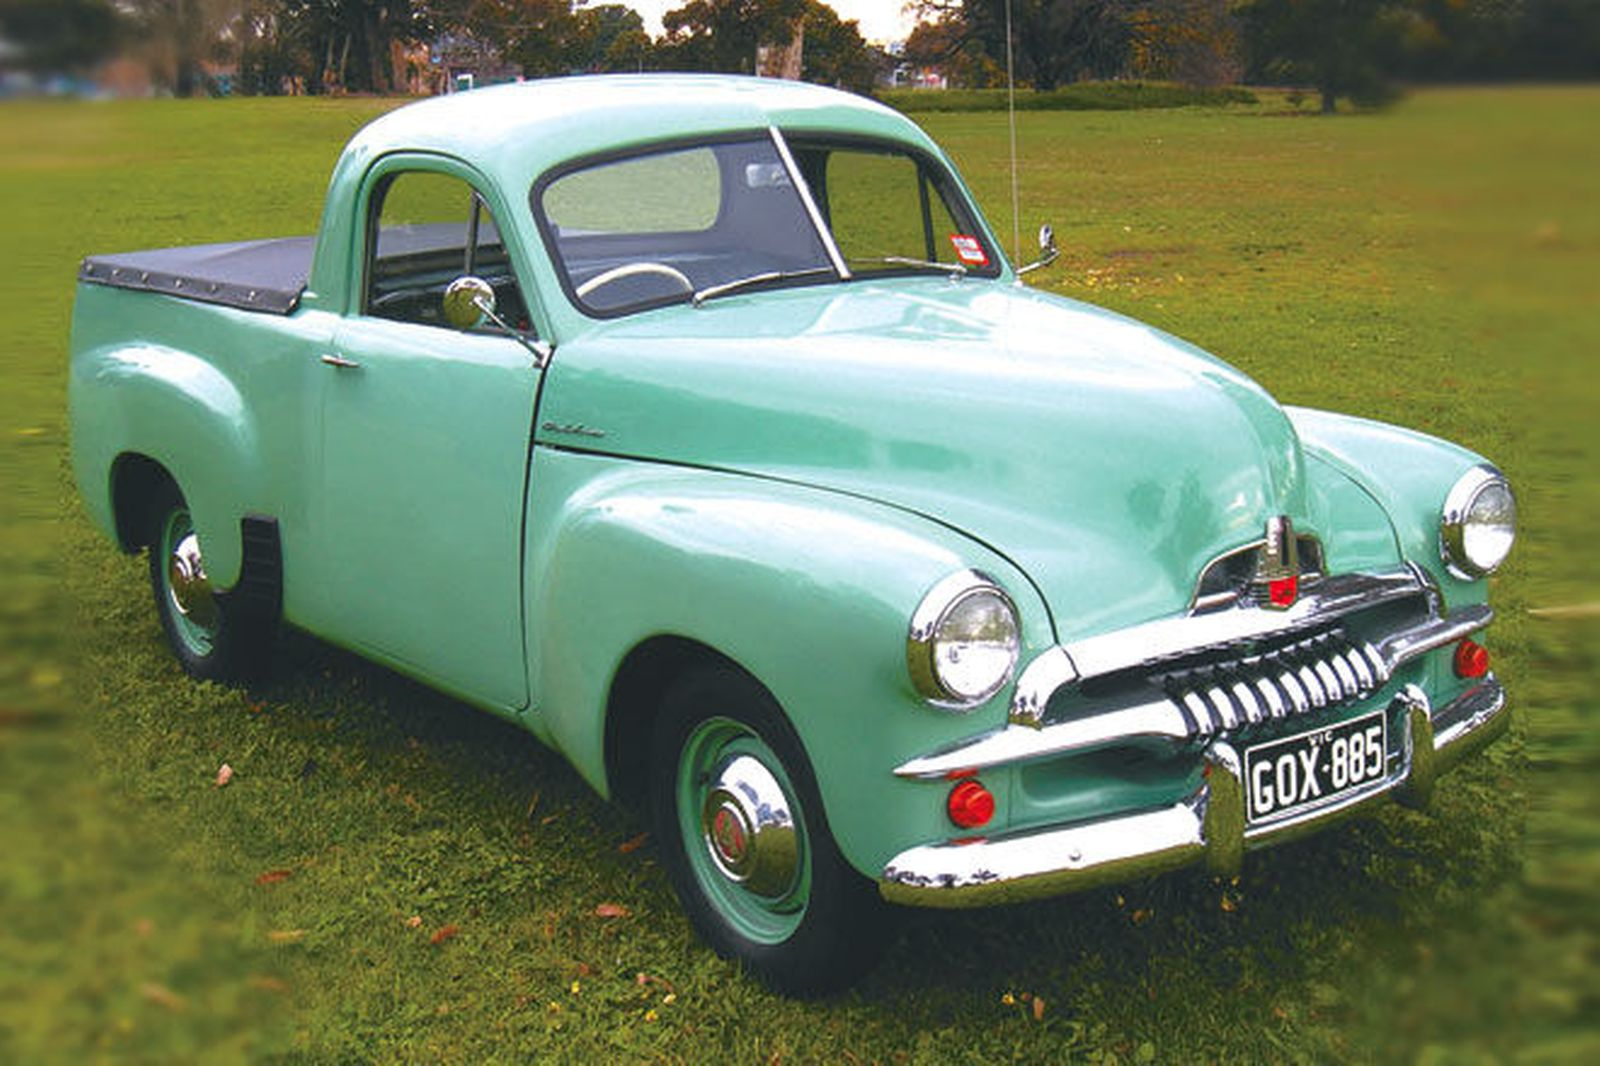 Holden Ute FJ model the first ute to carry the Holden Ute name was the 48-215 which was officially named the first ever Australian designed and built Holden Ute